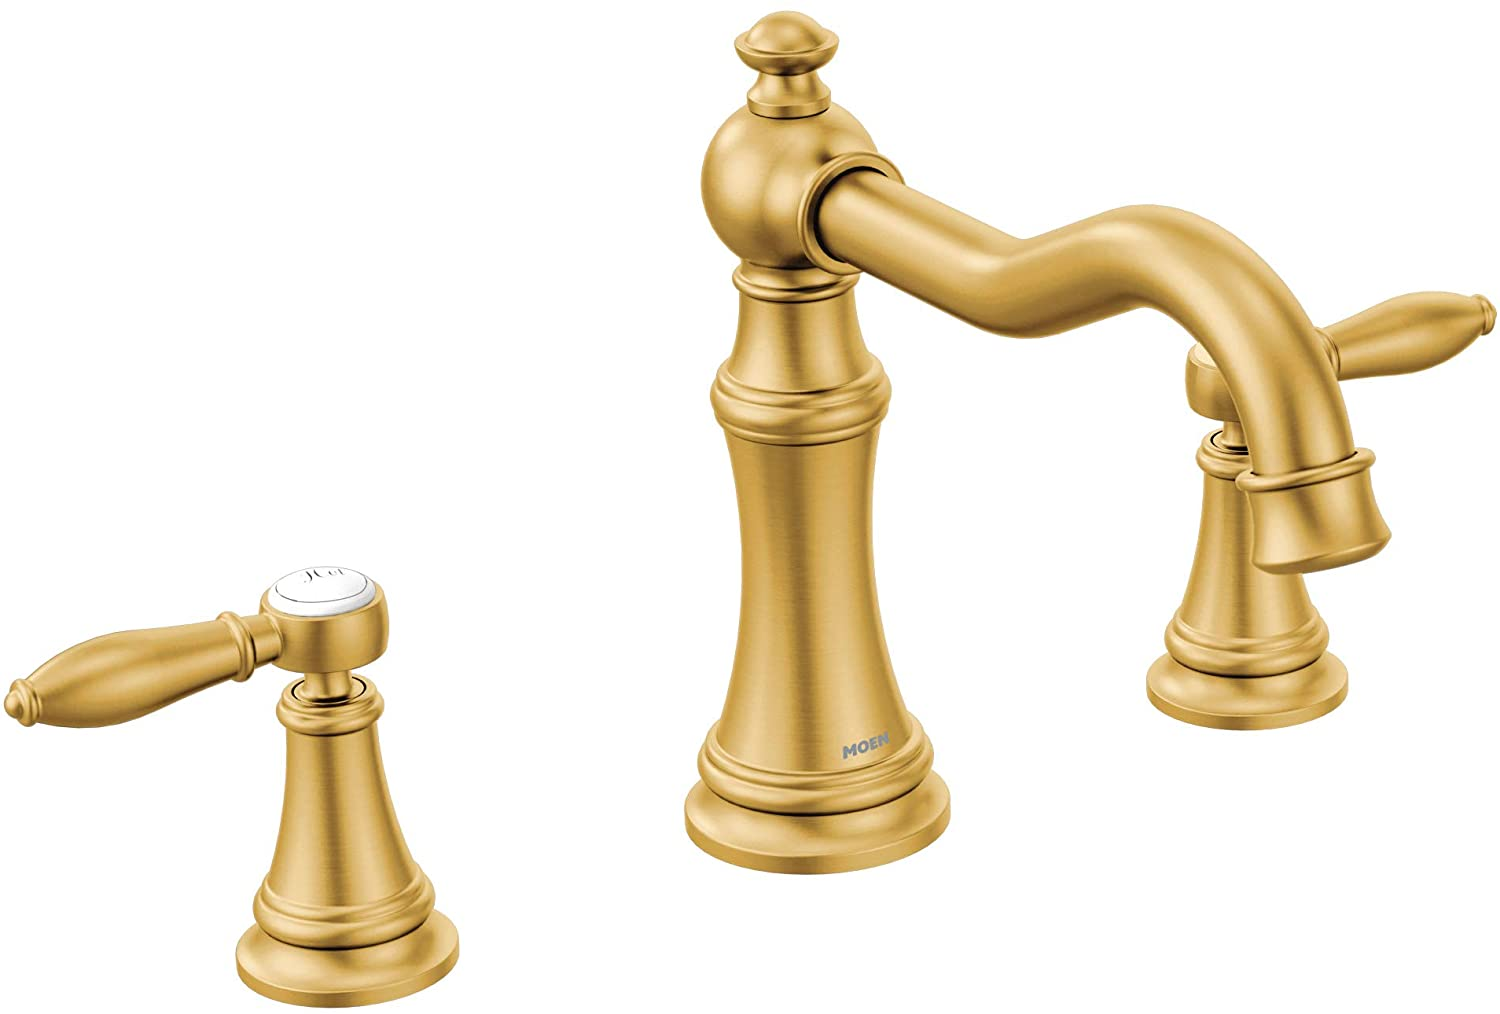 Moen TS22103BG Weymouth Two-Handle Roman Tub Faucet with Lever Handles Trim Kit, Valve Required, Brushed Gold